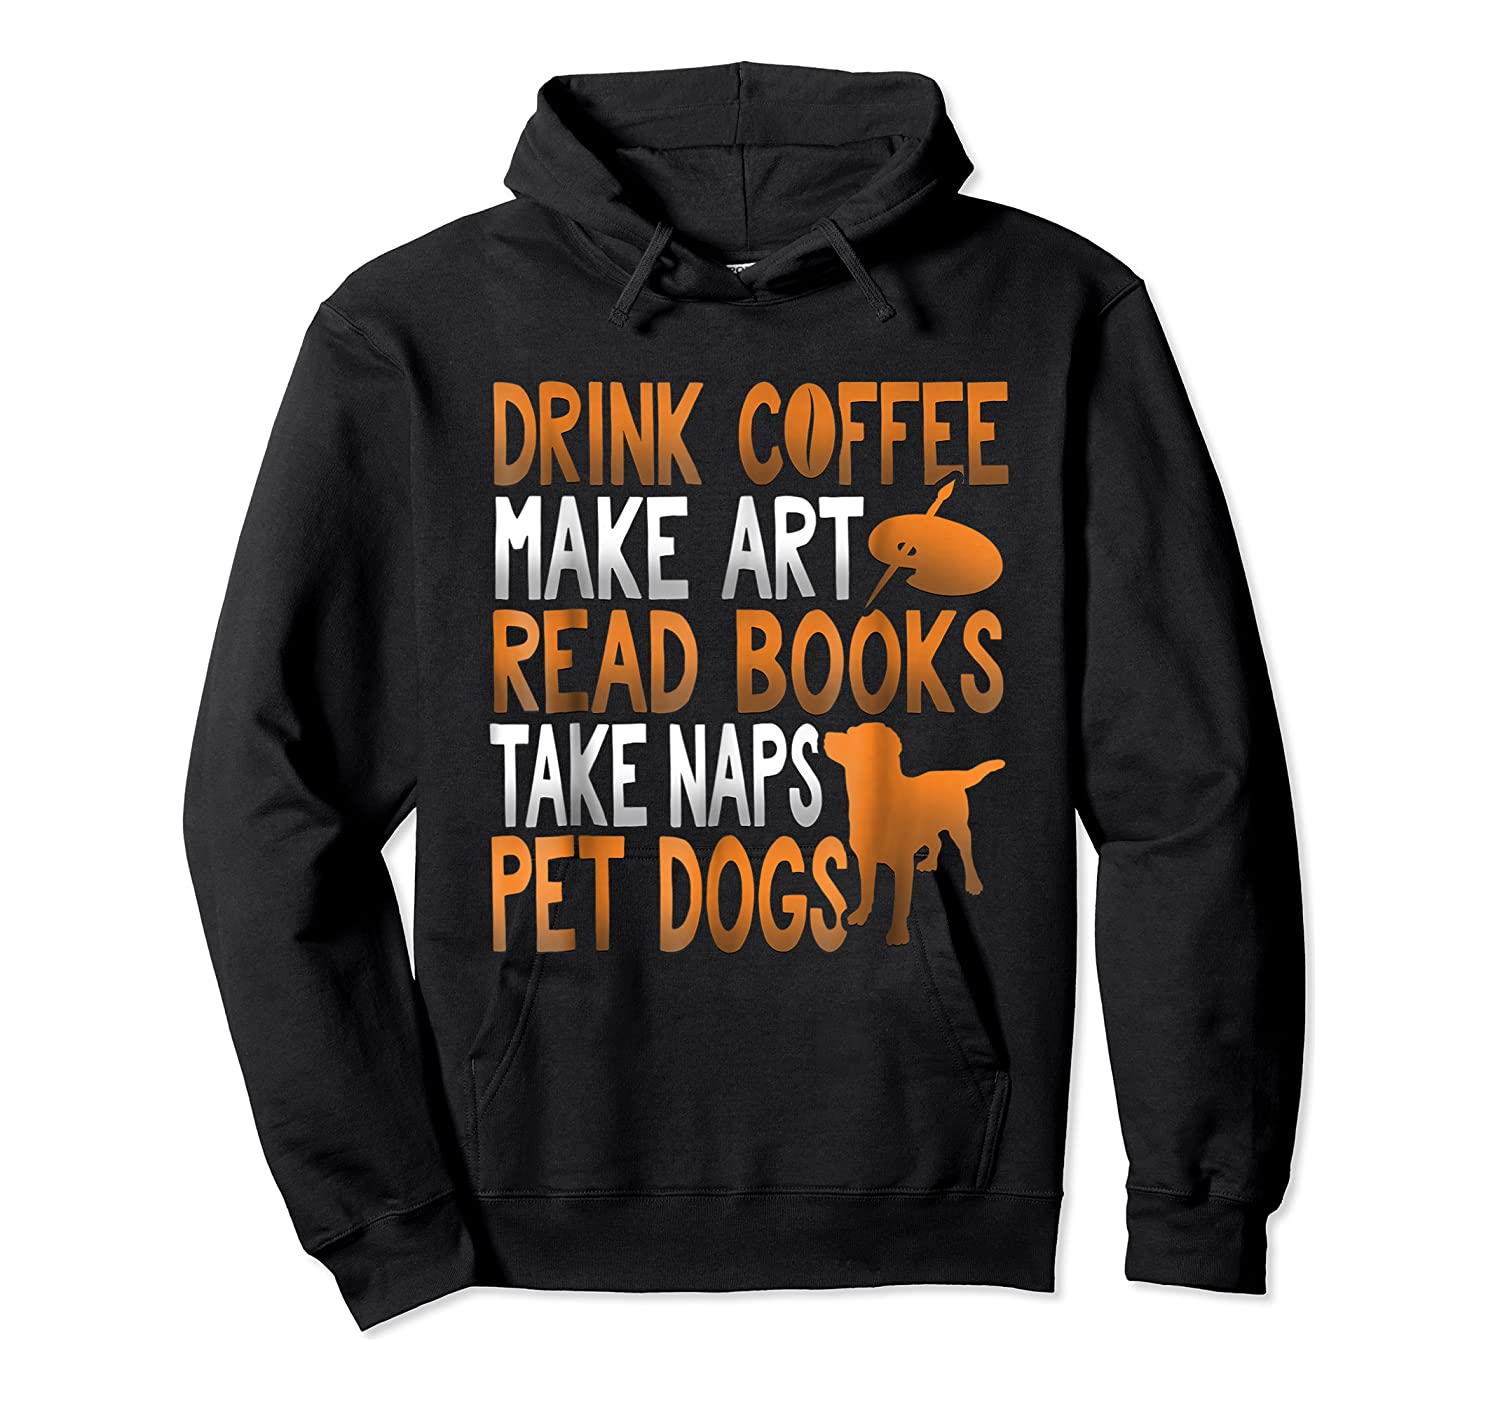 Drink Coffee Make Art Read Books Take Naps Pet Dogs Shirts Unisex Pullover Hoodie